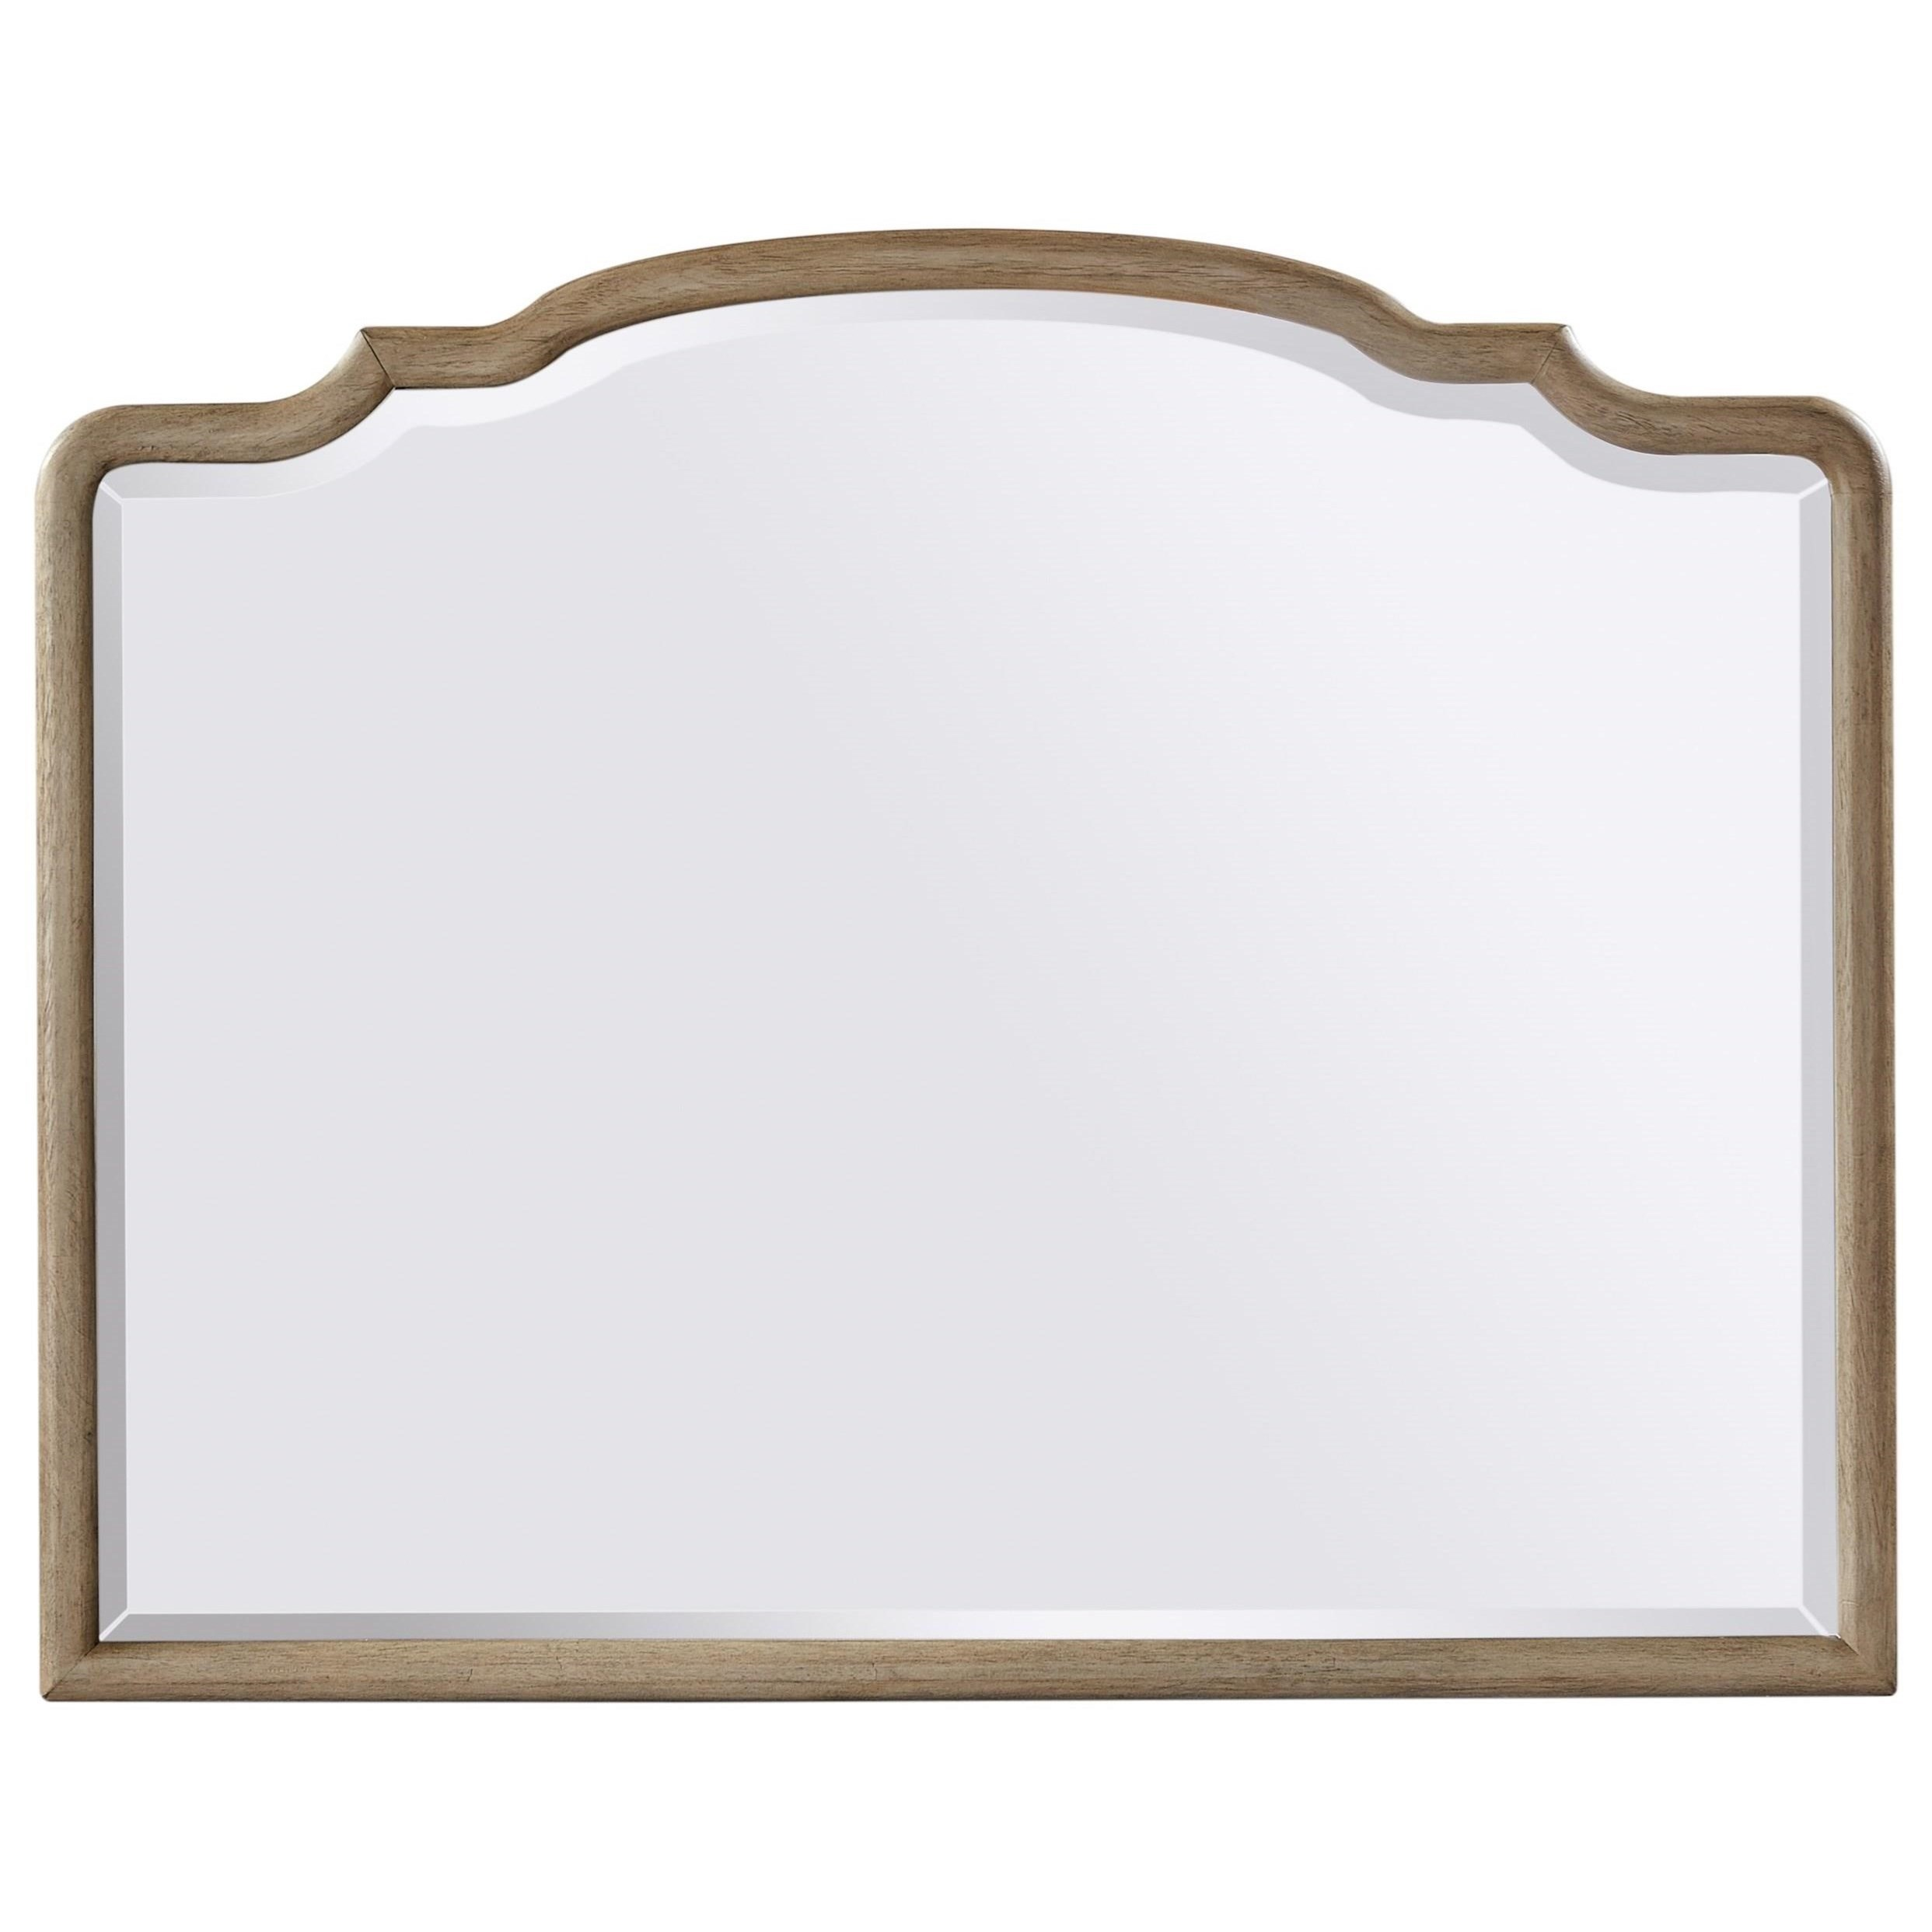 Provence Landscape Mirror  by Aspenhome at Walker's Furniture